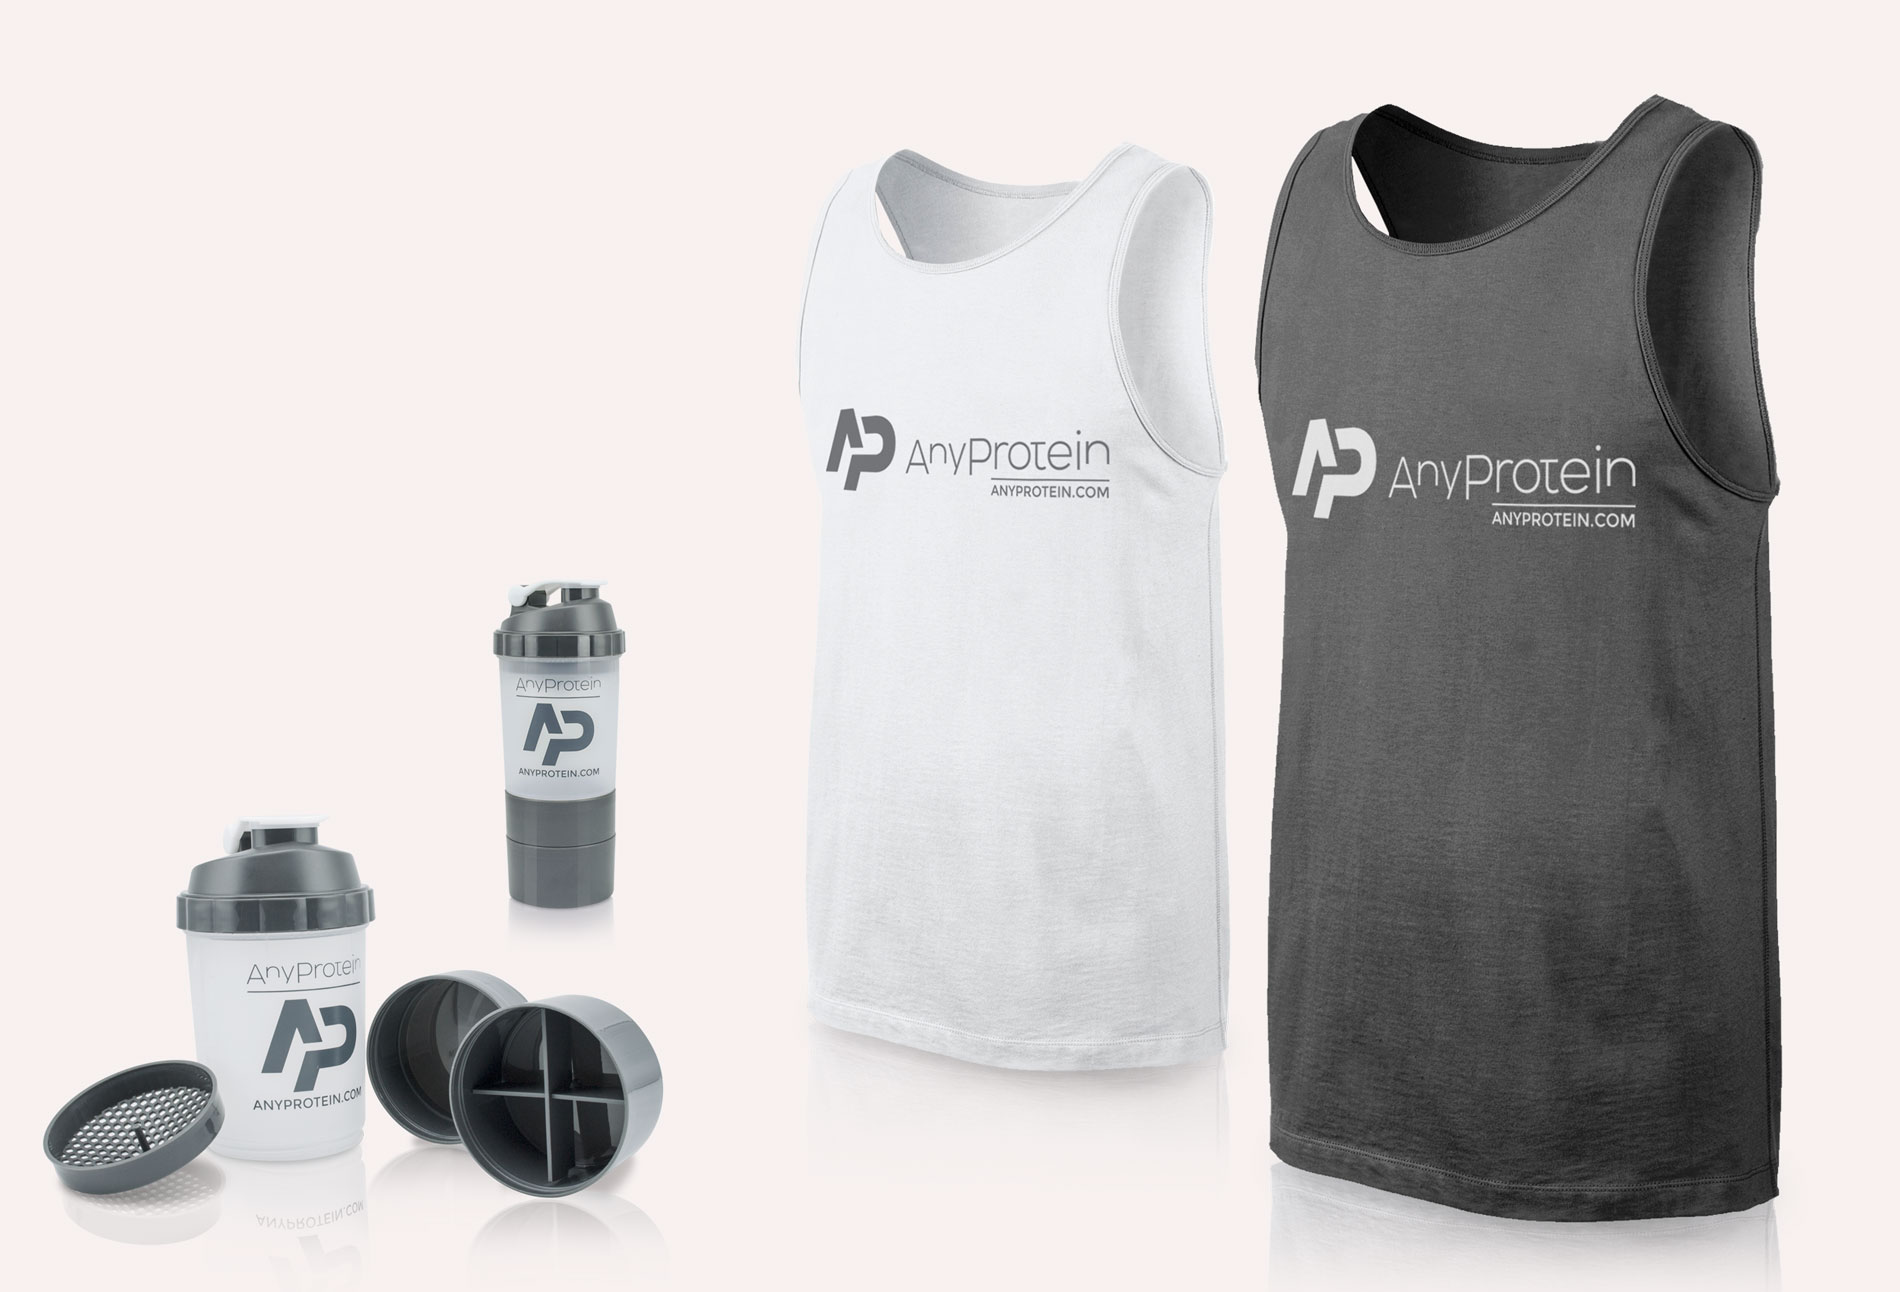 AnyProtein Accessories Design - design whitstable kent